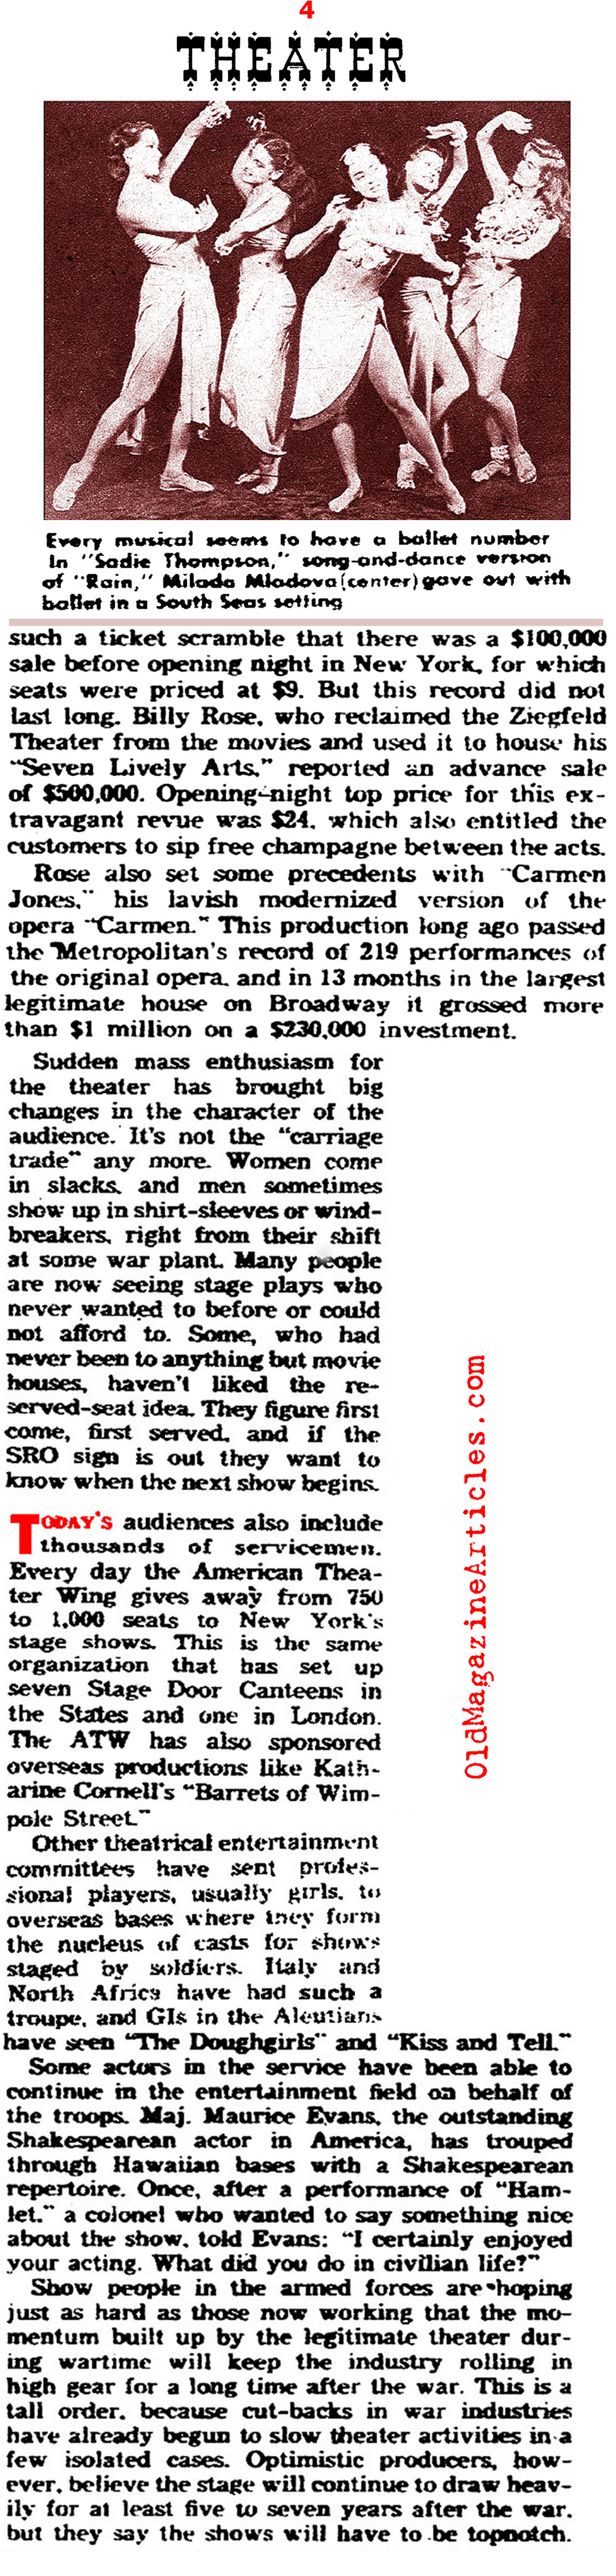 Broadway Theatre in the Forties (Yank Magazine, 1945)